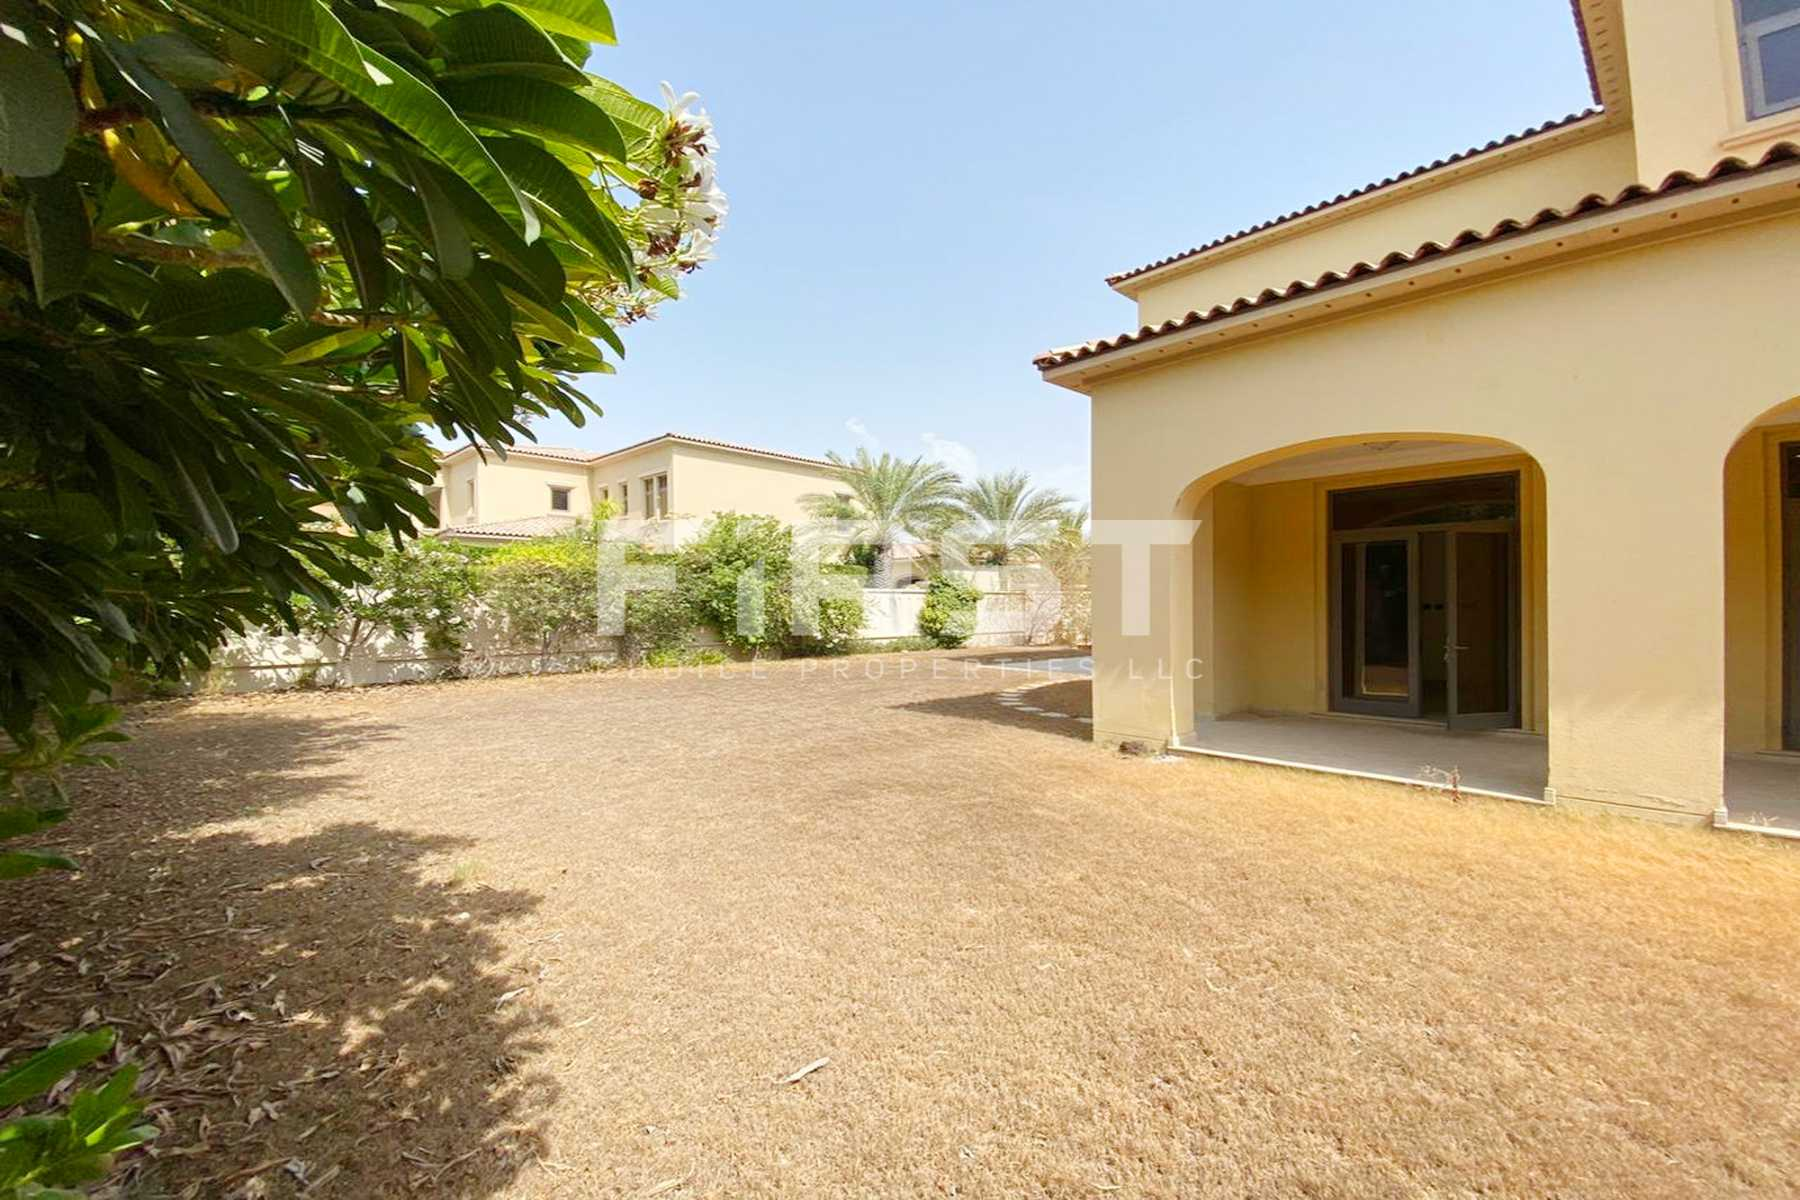 External Photo of 5 Bedroom Villa in Saadiyat Beach Villa in Saadiyat Island Abu Dhabi UAE (2).jpg